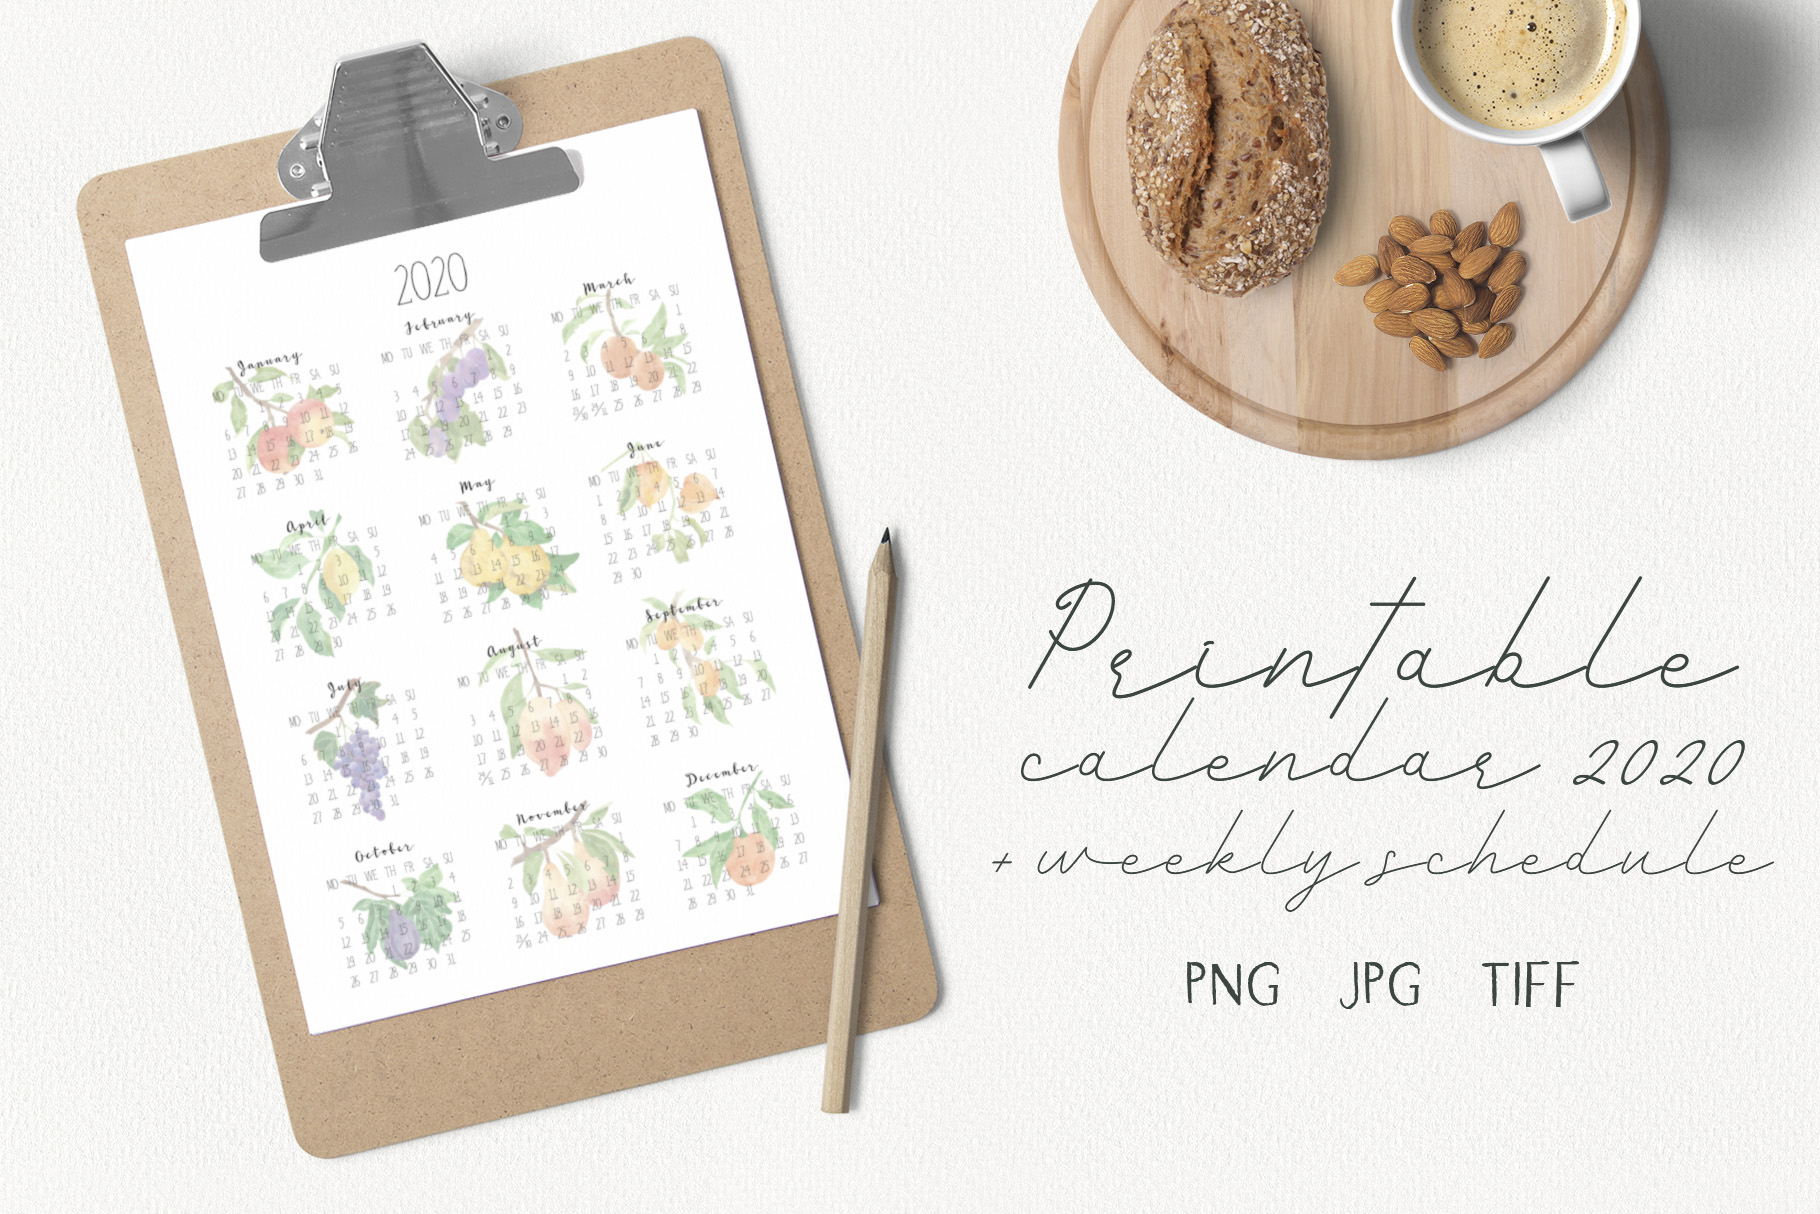 Um Calendar 2020 Printable calendar 2020 and weekly schedule